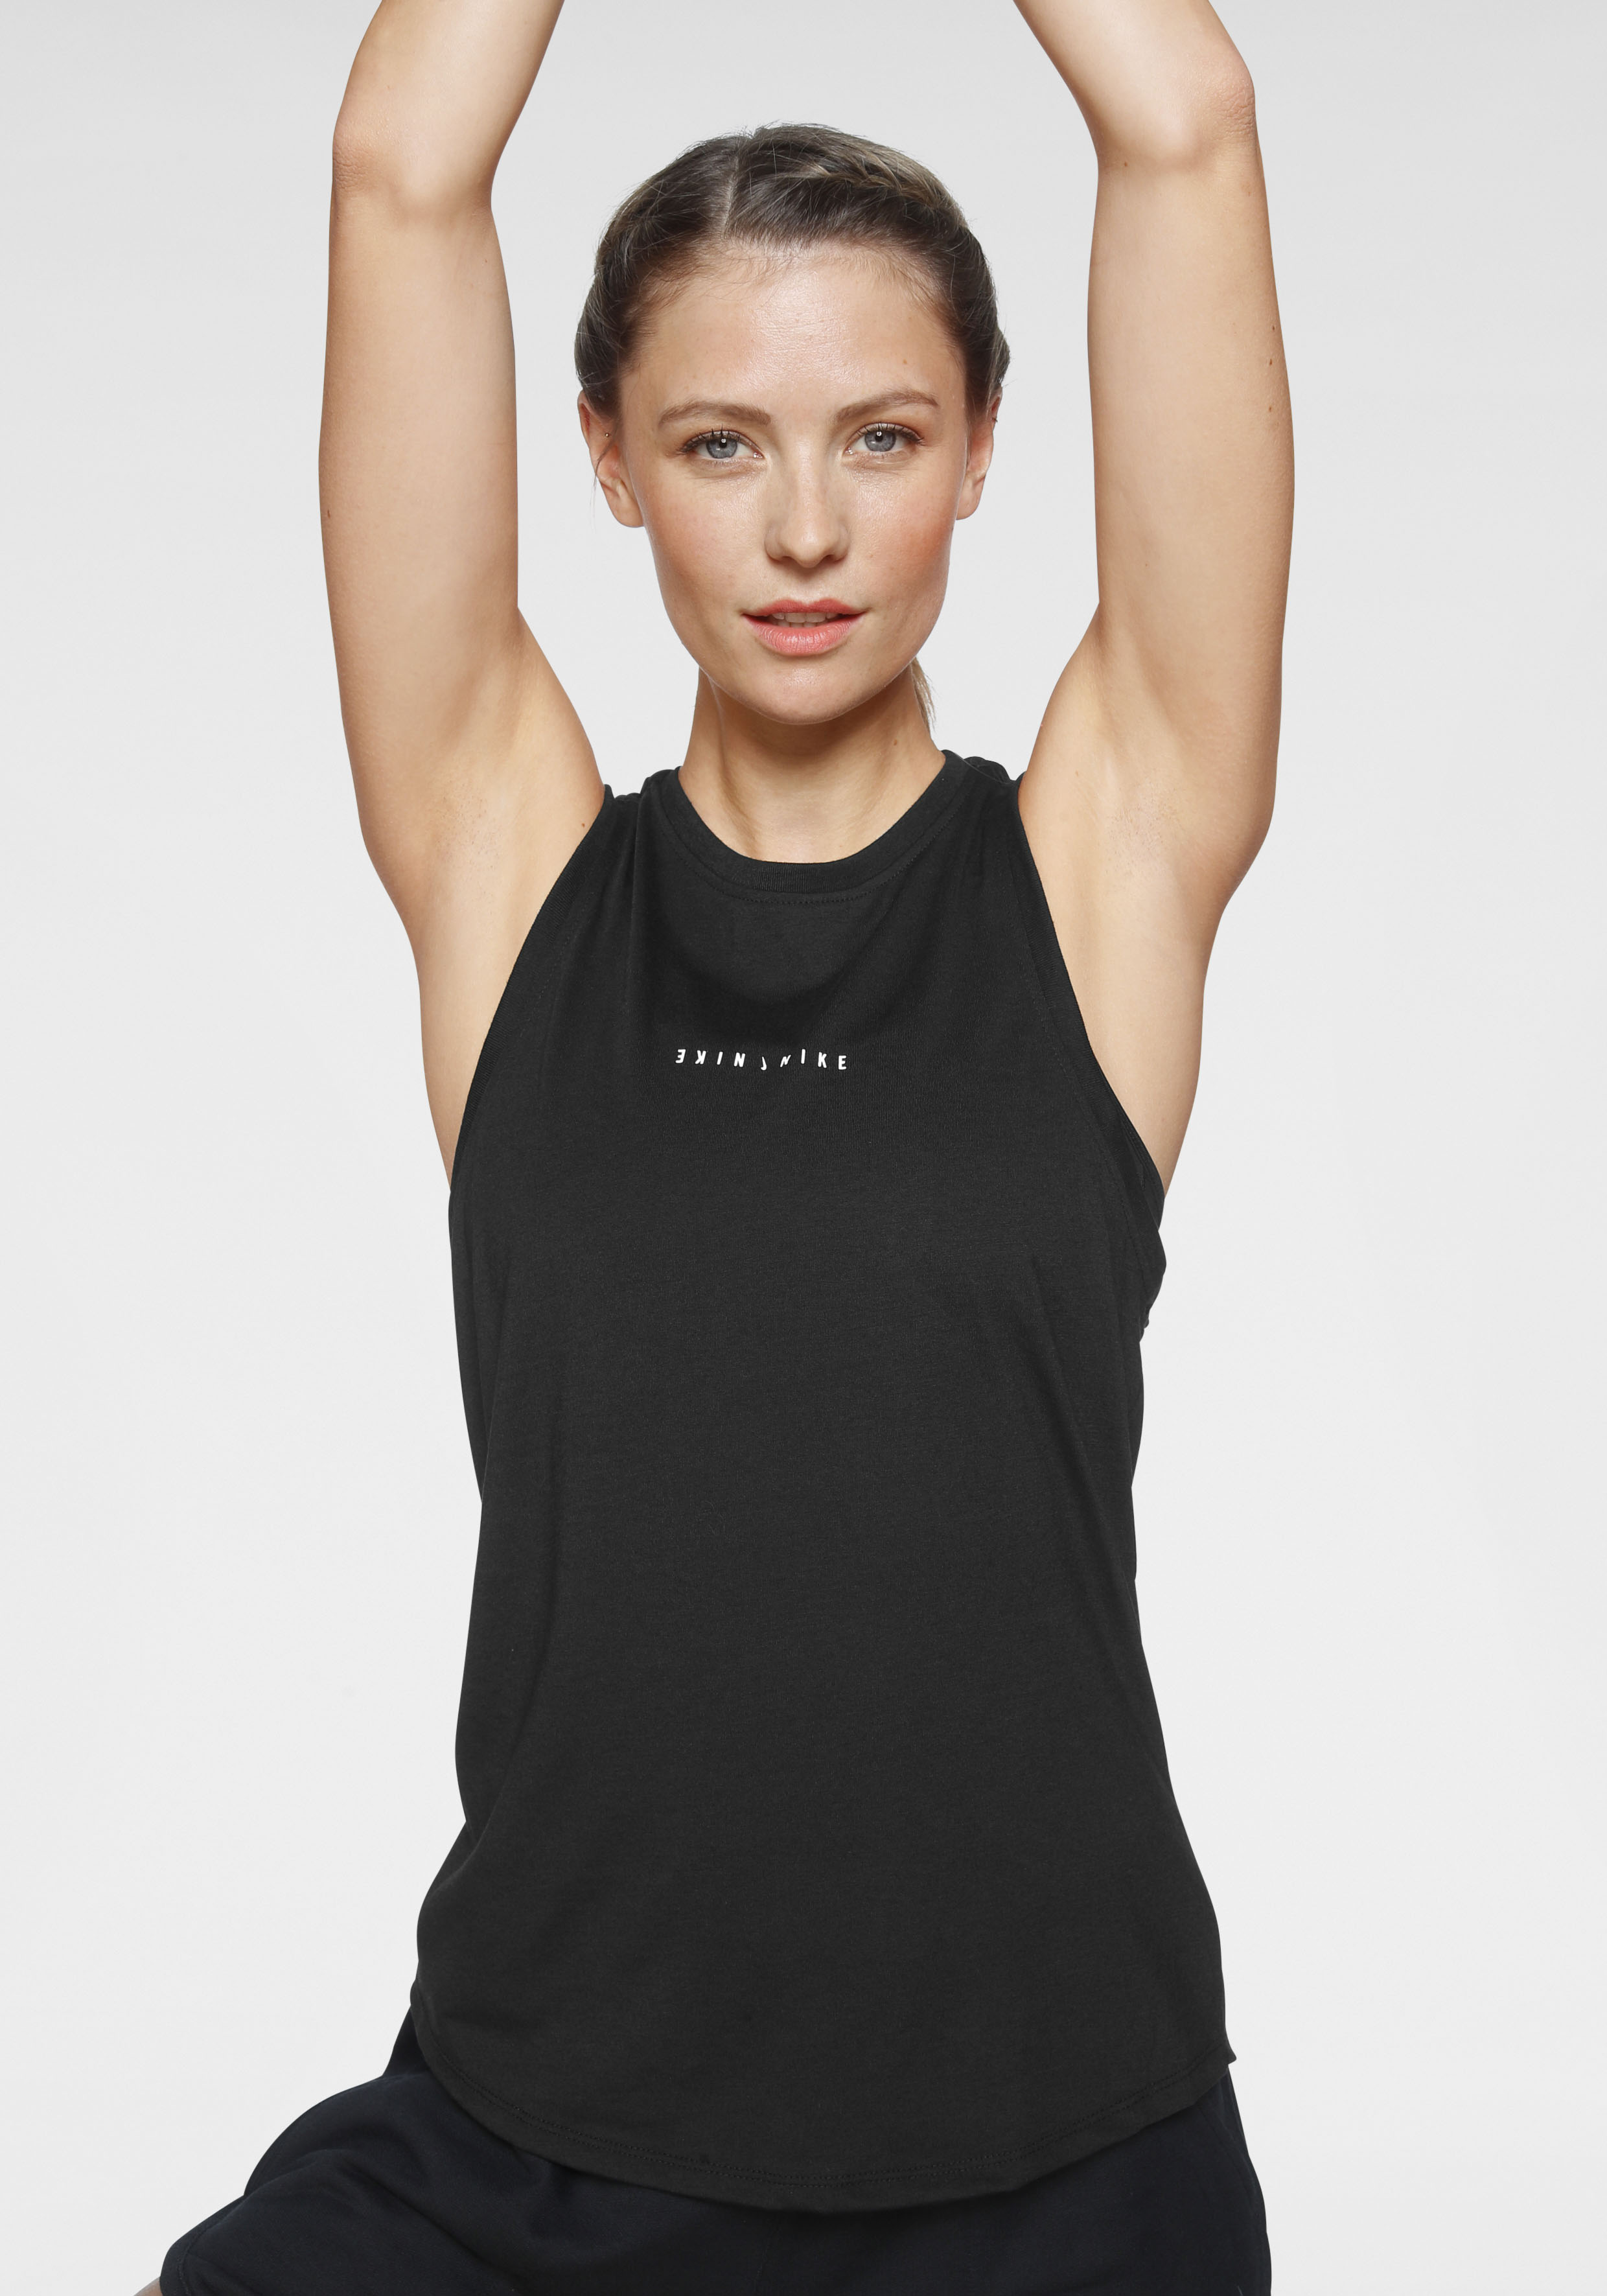 Nike Yogatop Dri-FIT Women's Yoga Training schwarz Damen Ärmellose Shirts Sweatshirts Tops